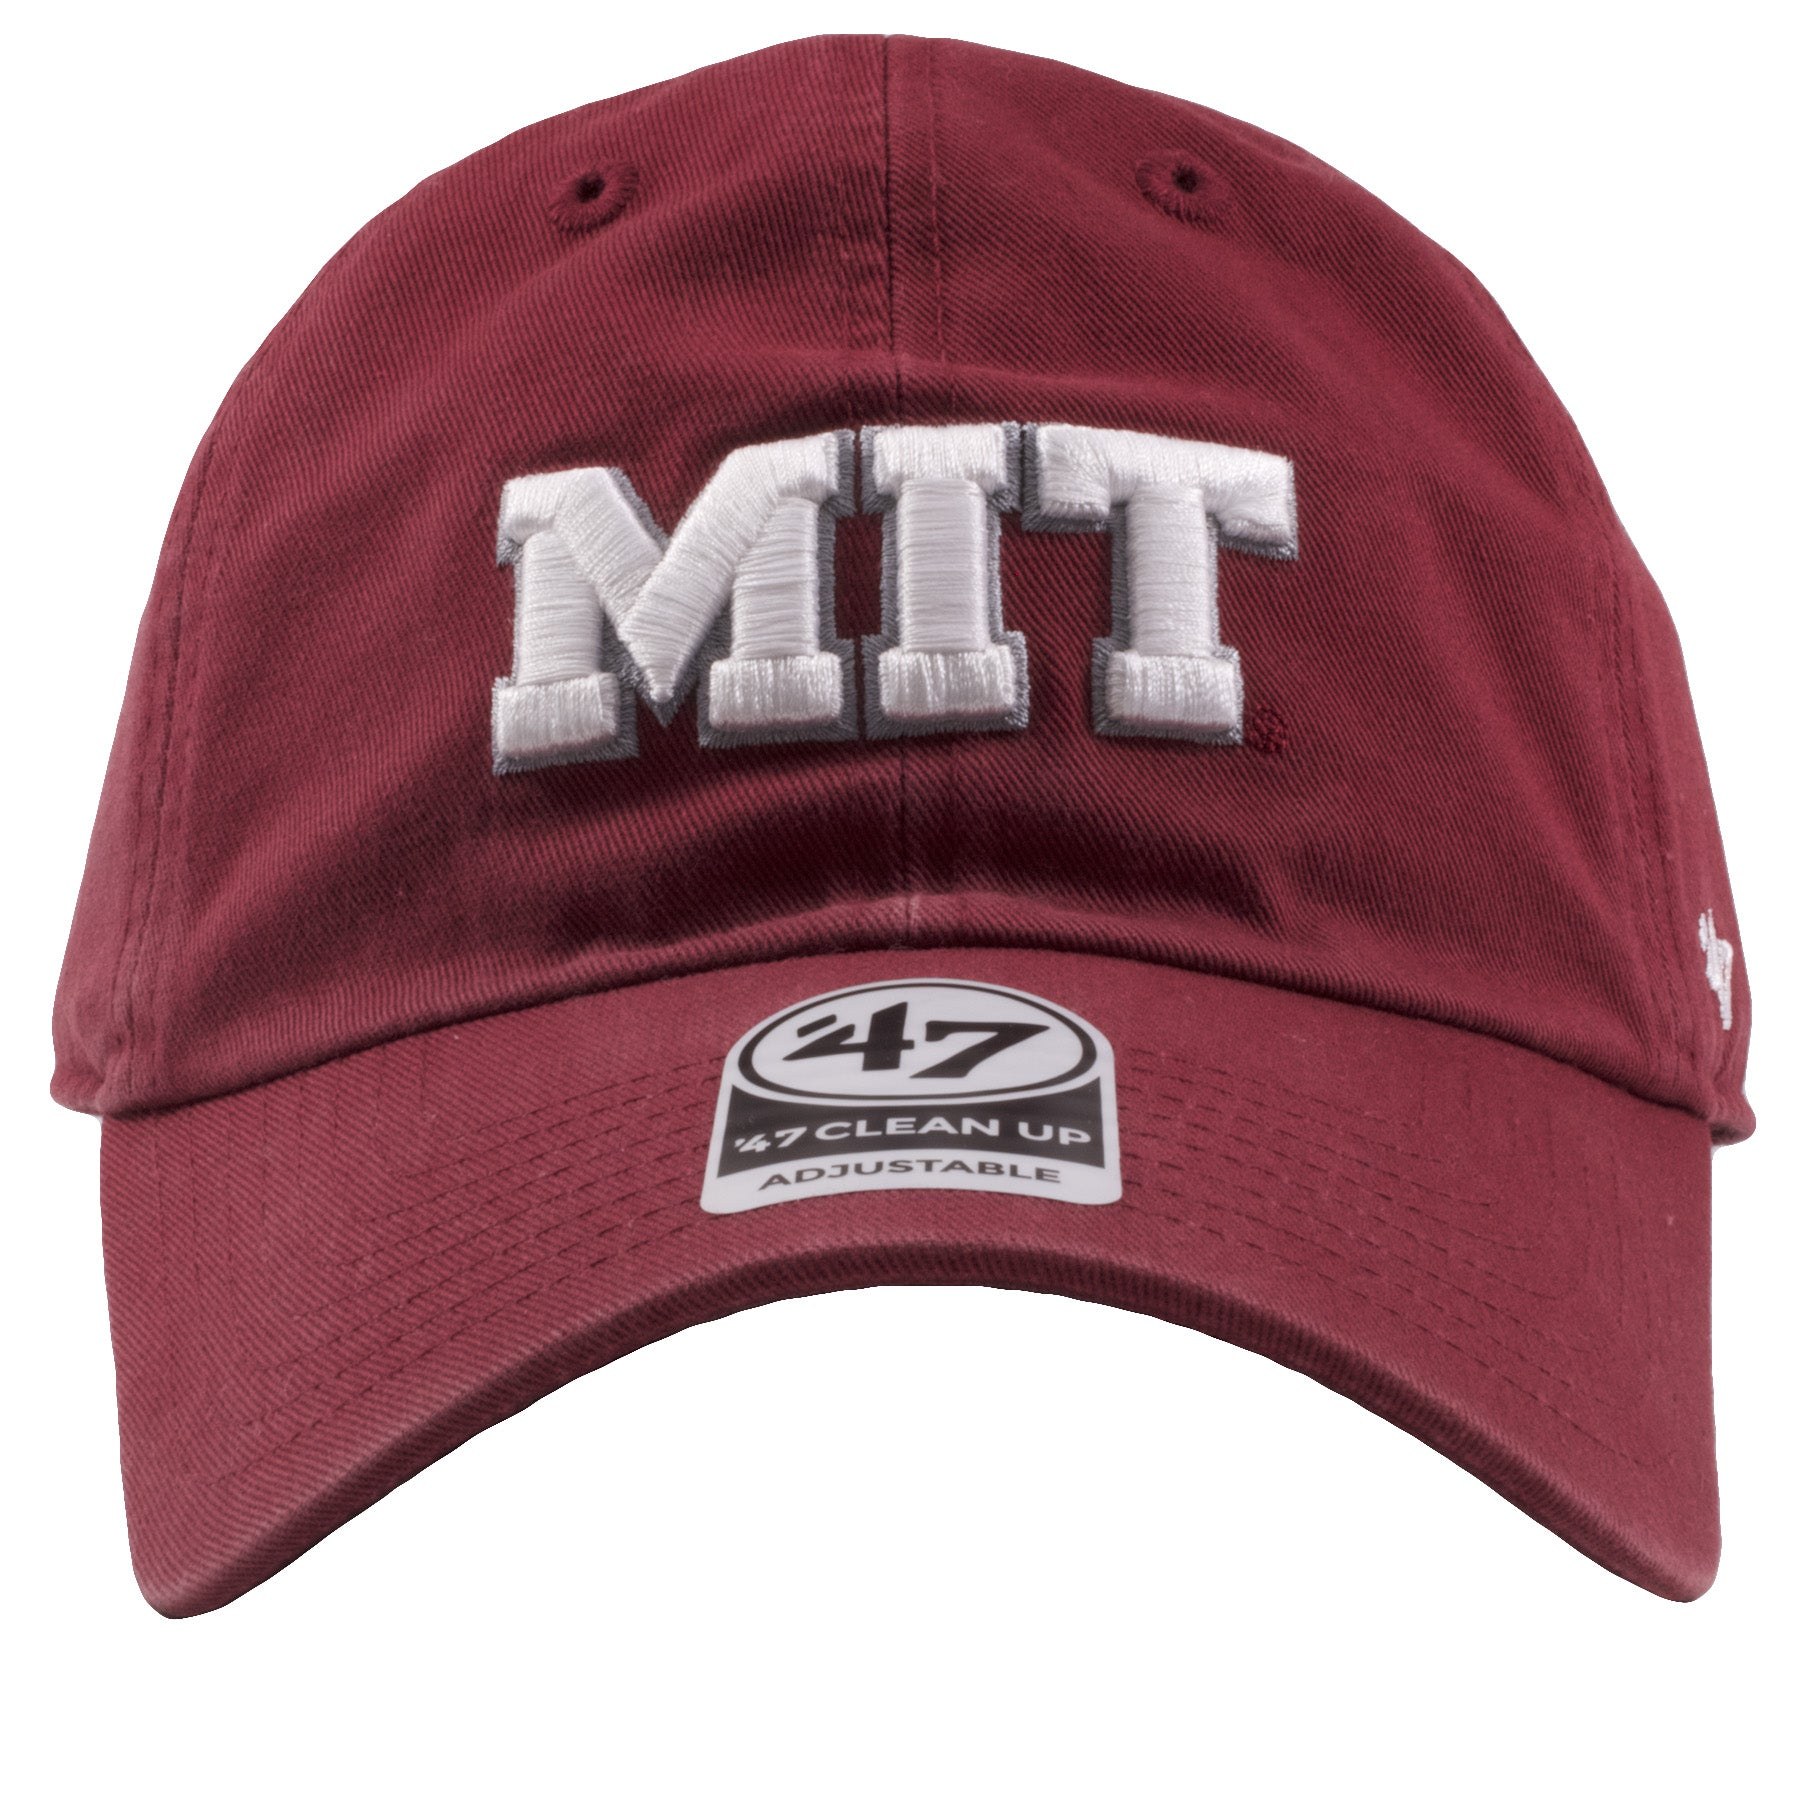 Embroidered on the front of the MIT maroon adjustable dad hat is the MIT  logo embroidered 6facd681e9b6